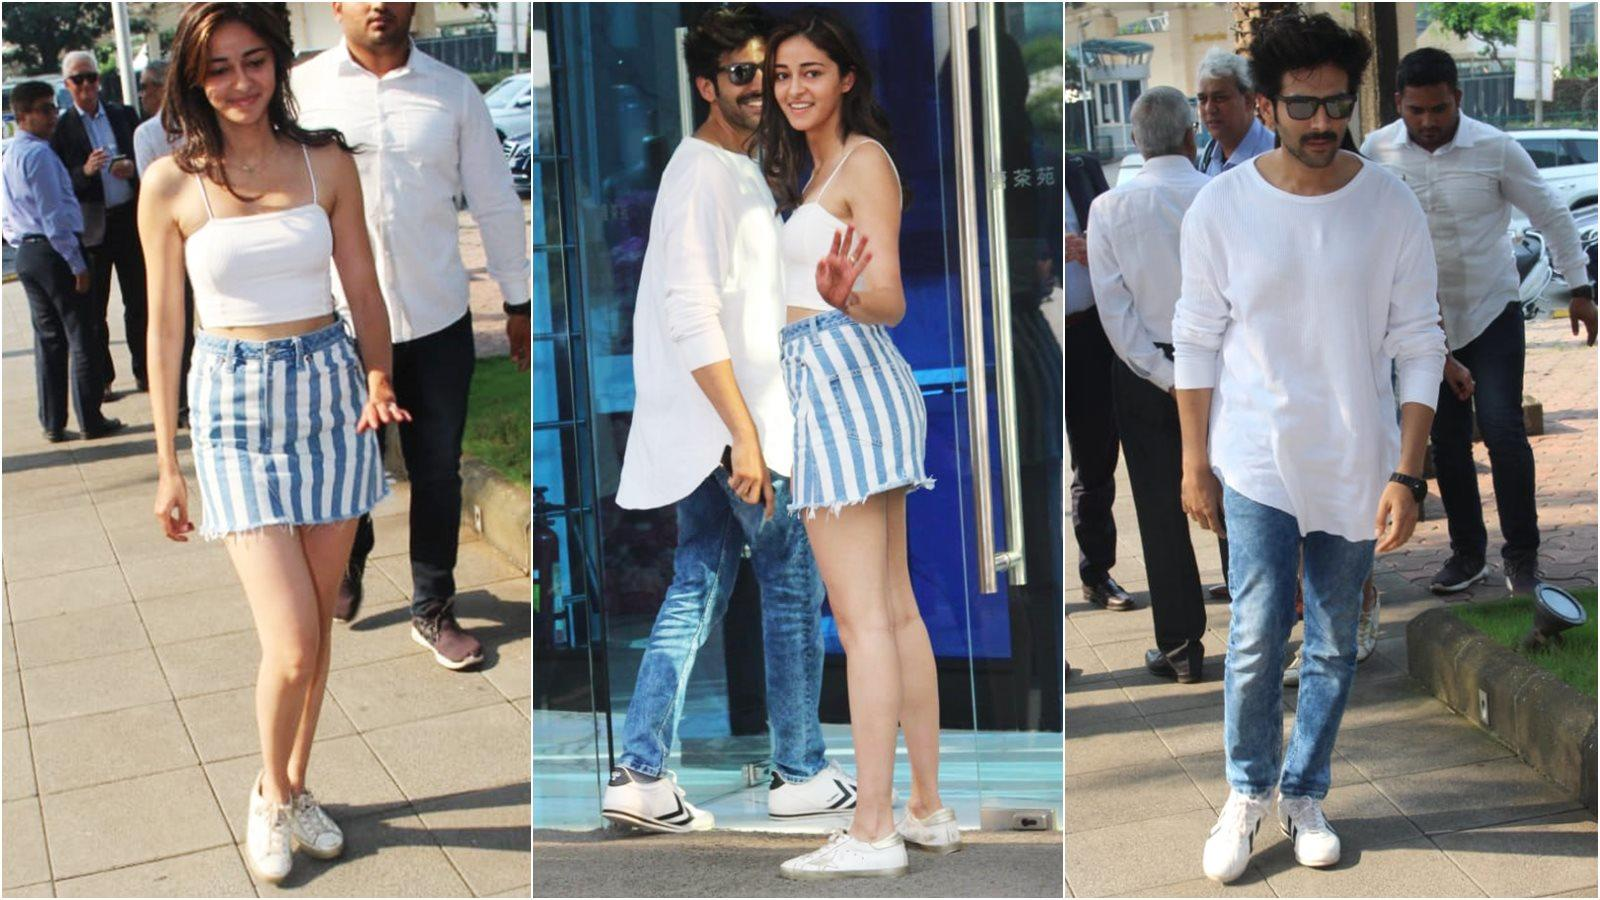 kartik-aaryan-and-ananya-panday-keep-it-cool-and-basic-as-they-shell-out-major-twinning-goals-in-white-and-blue-casual-outfits